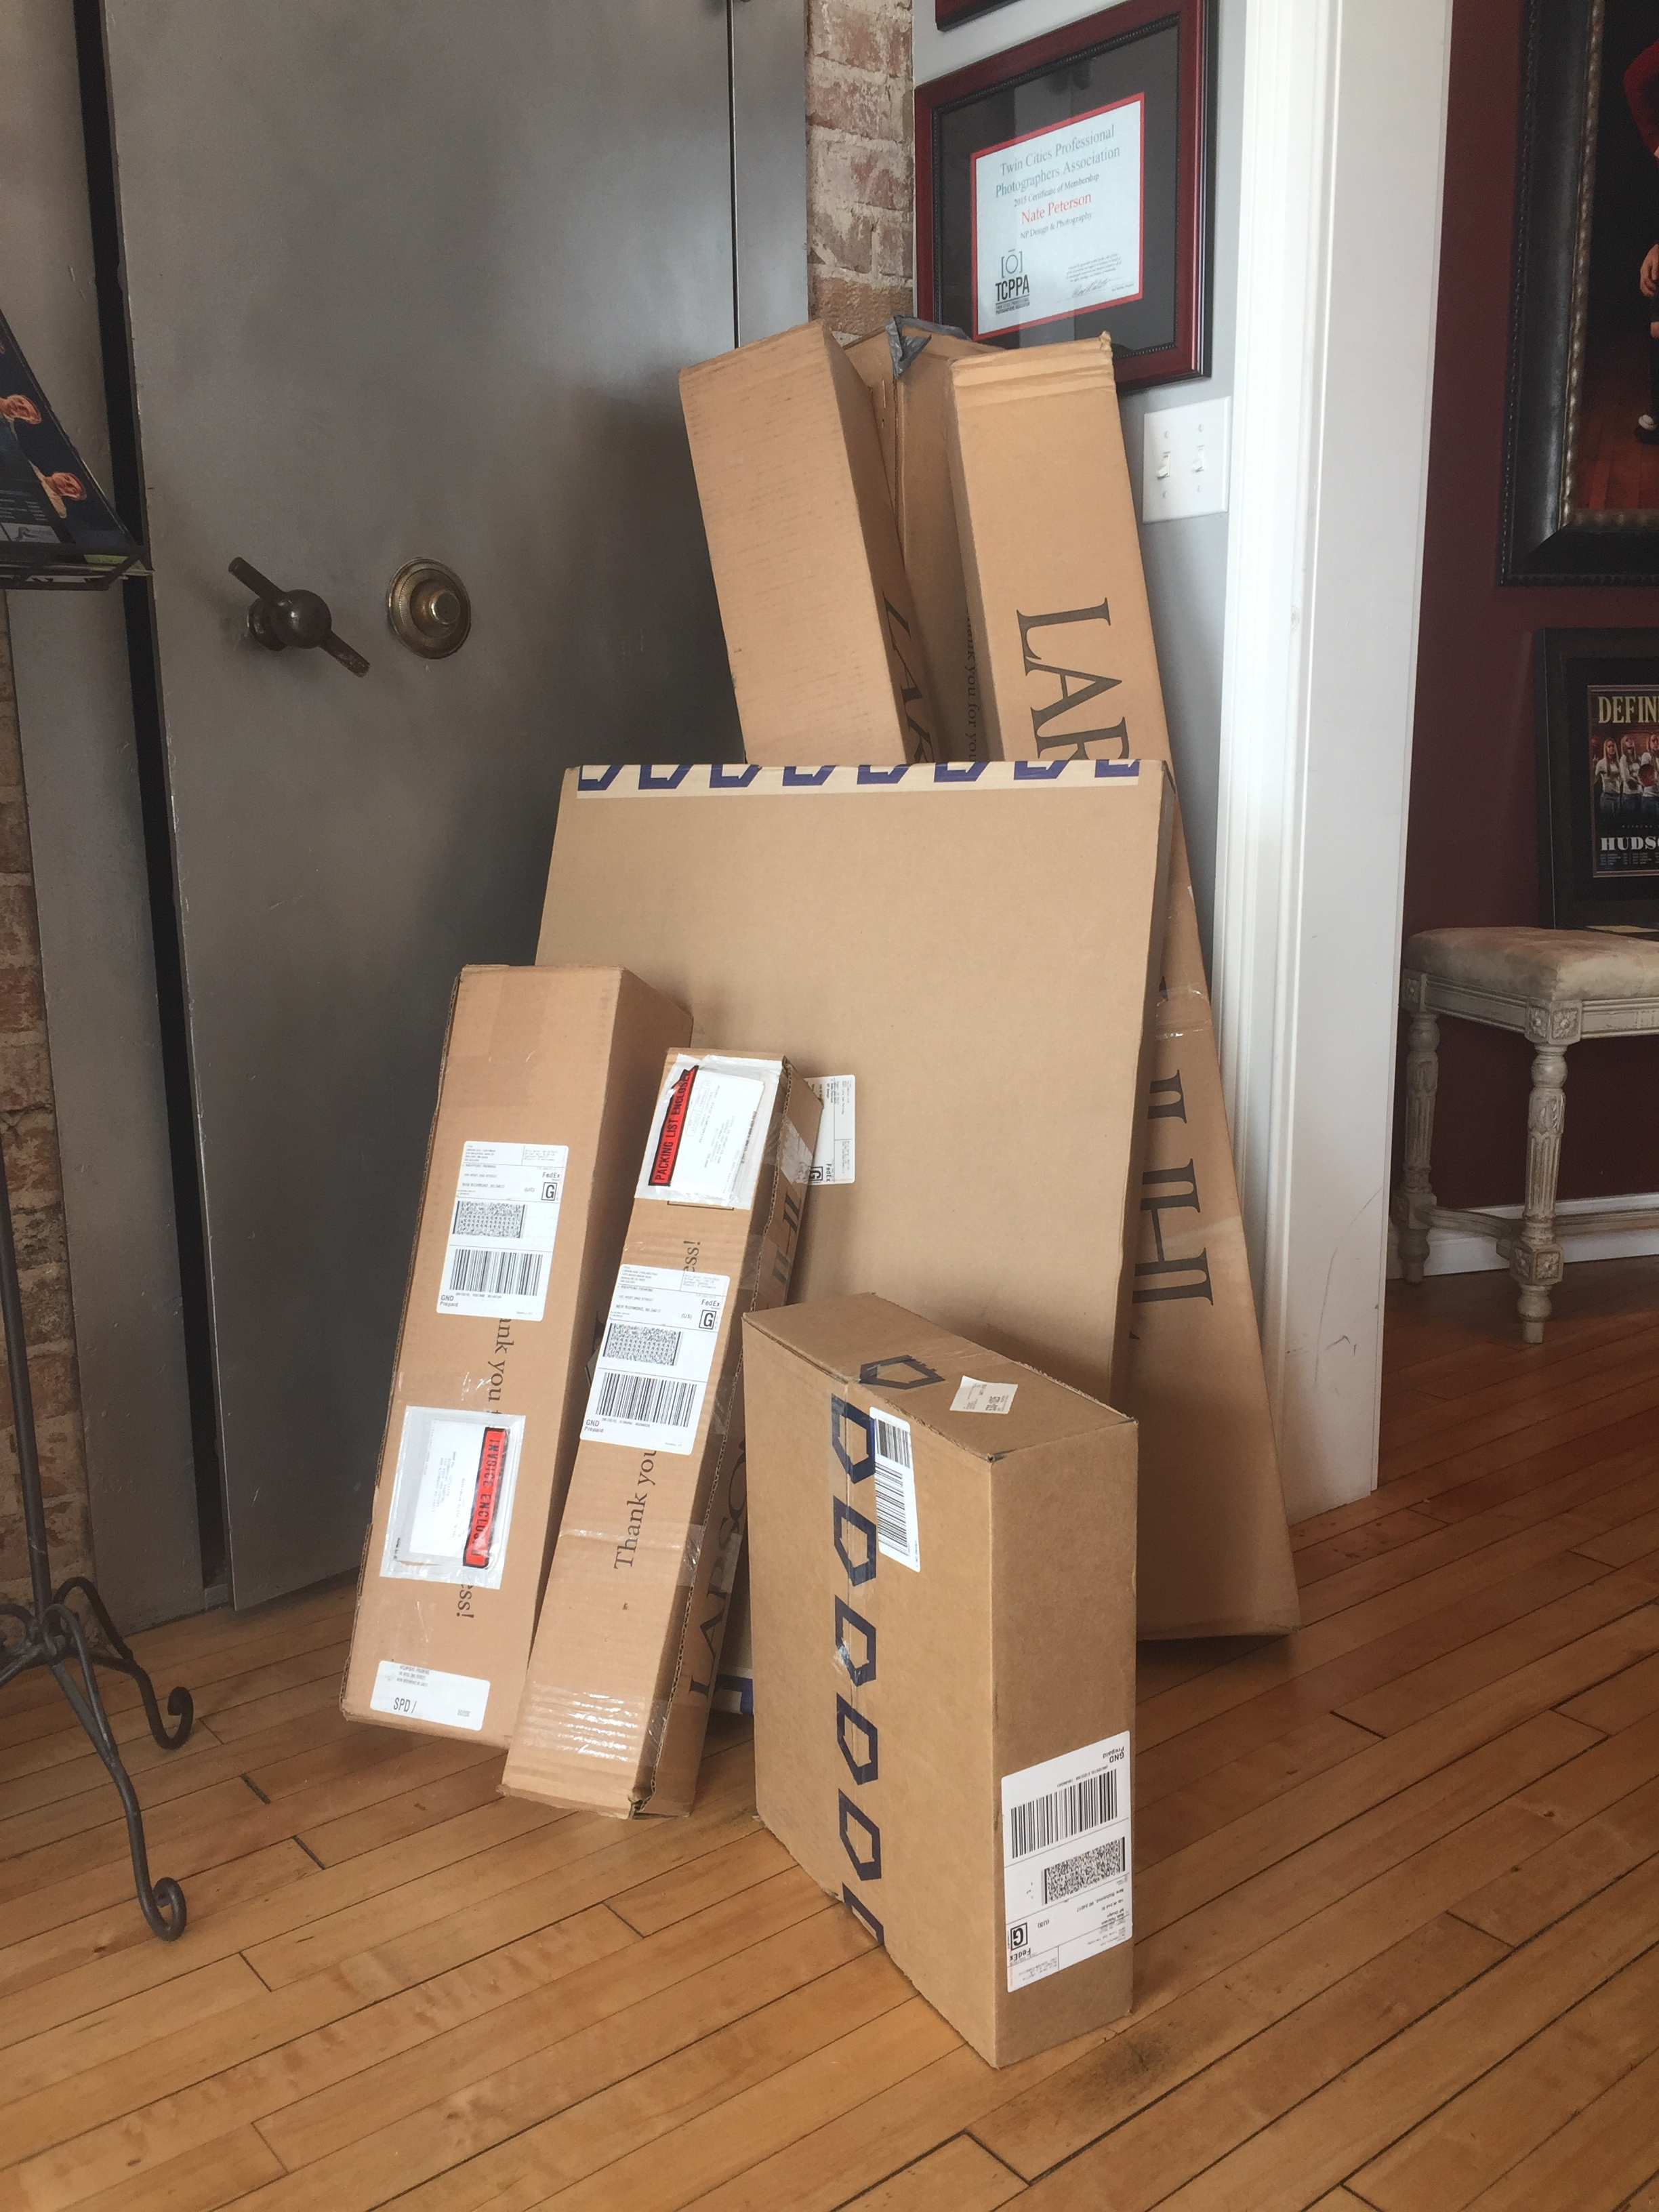 Our haul from the Fedex guy one day. He had to make four trips!